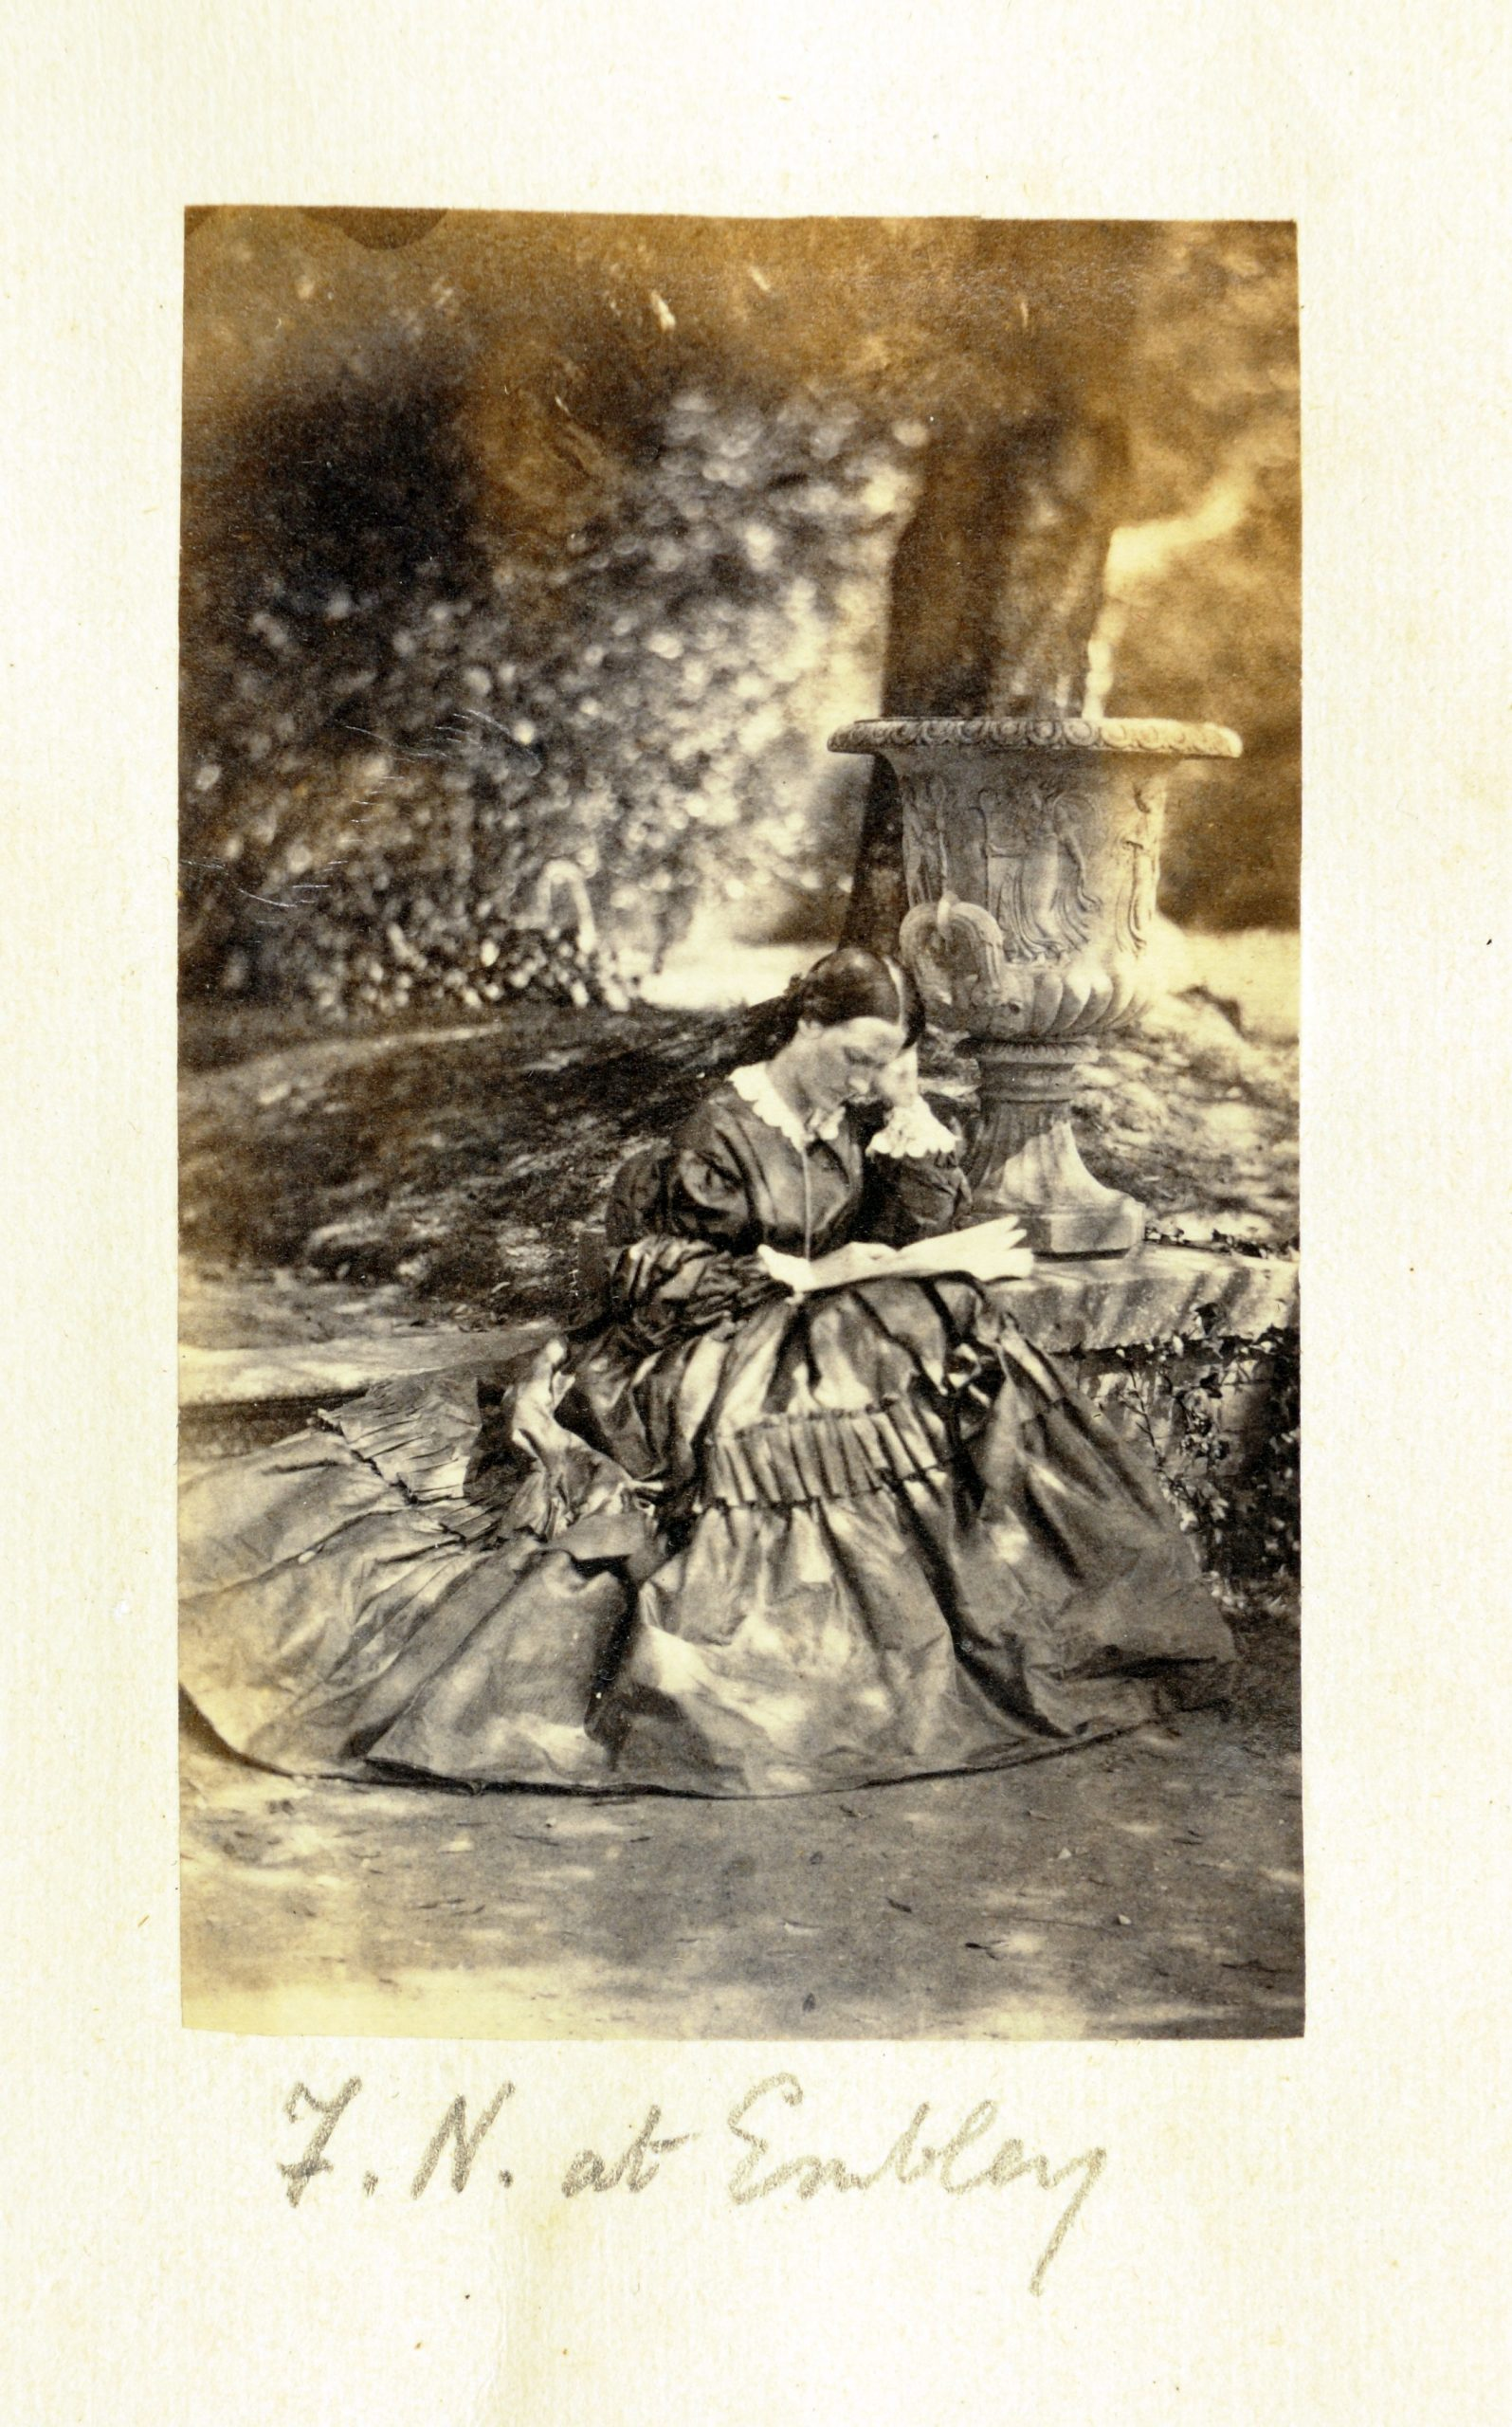 Florence Nightingale at Embley Park in 1858, just after Crimean War. Photography by William Slater